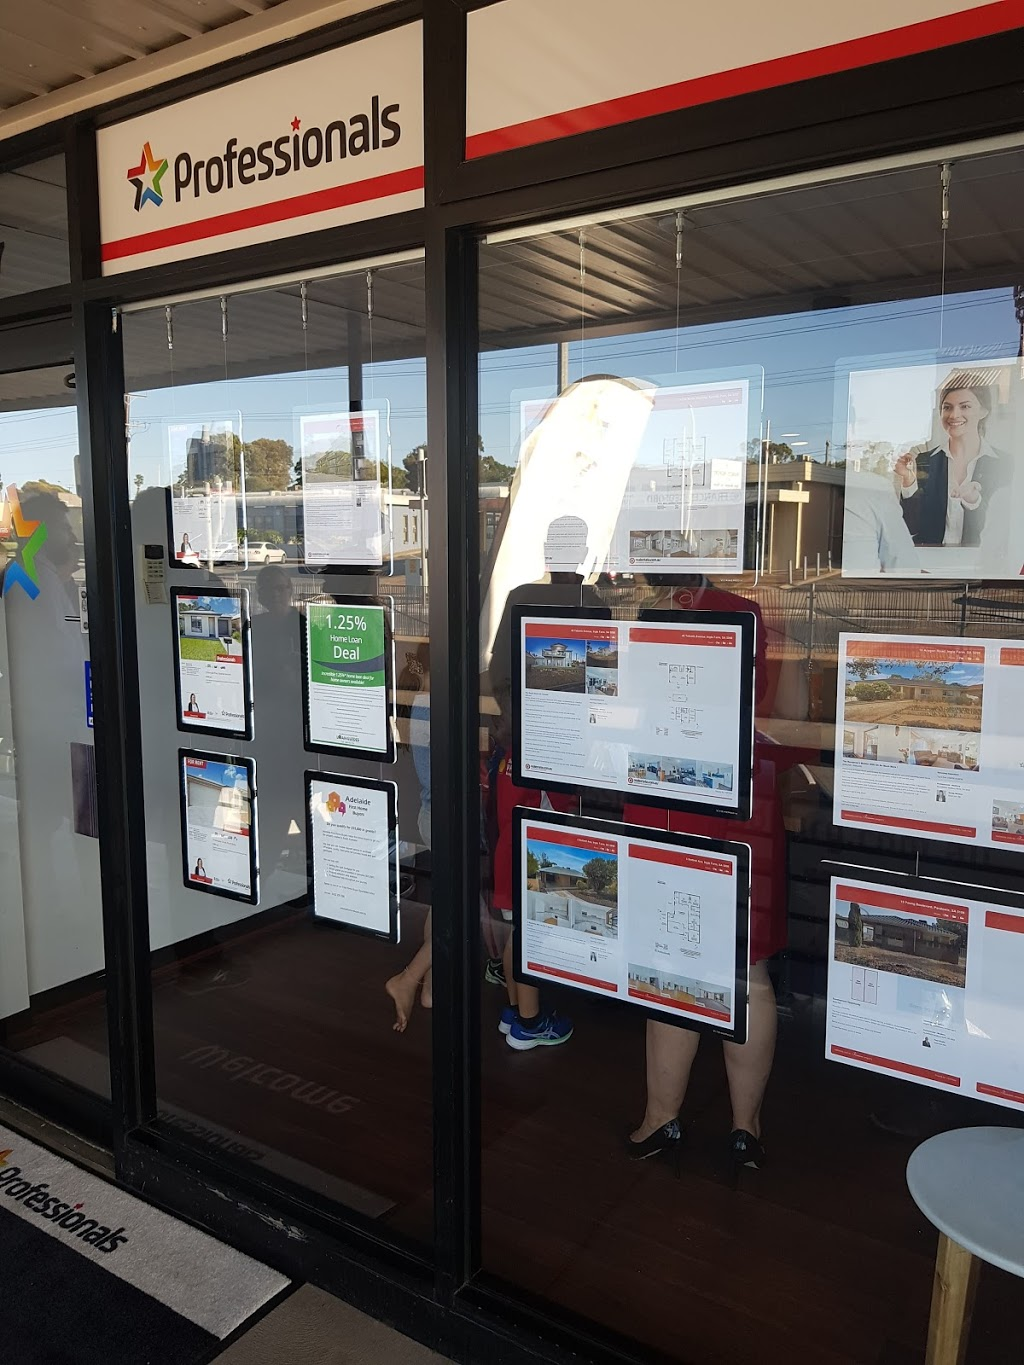 Professionals Modbury Real Estate Agents | real estate agency | Shop 25/429 Montague Rd, Modbury North SA 5092, Australia | 0884657702 OR +61 8 8465 7702